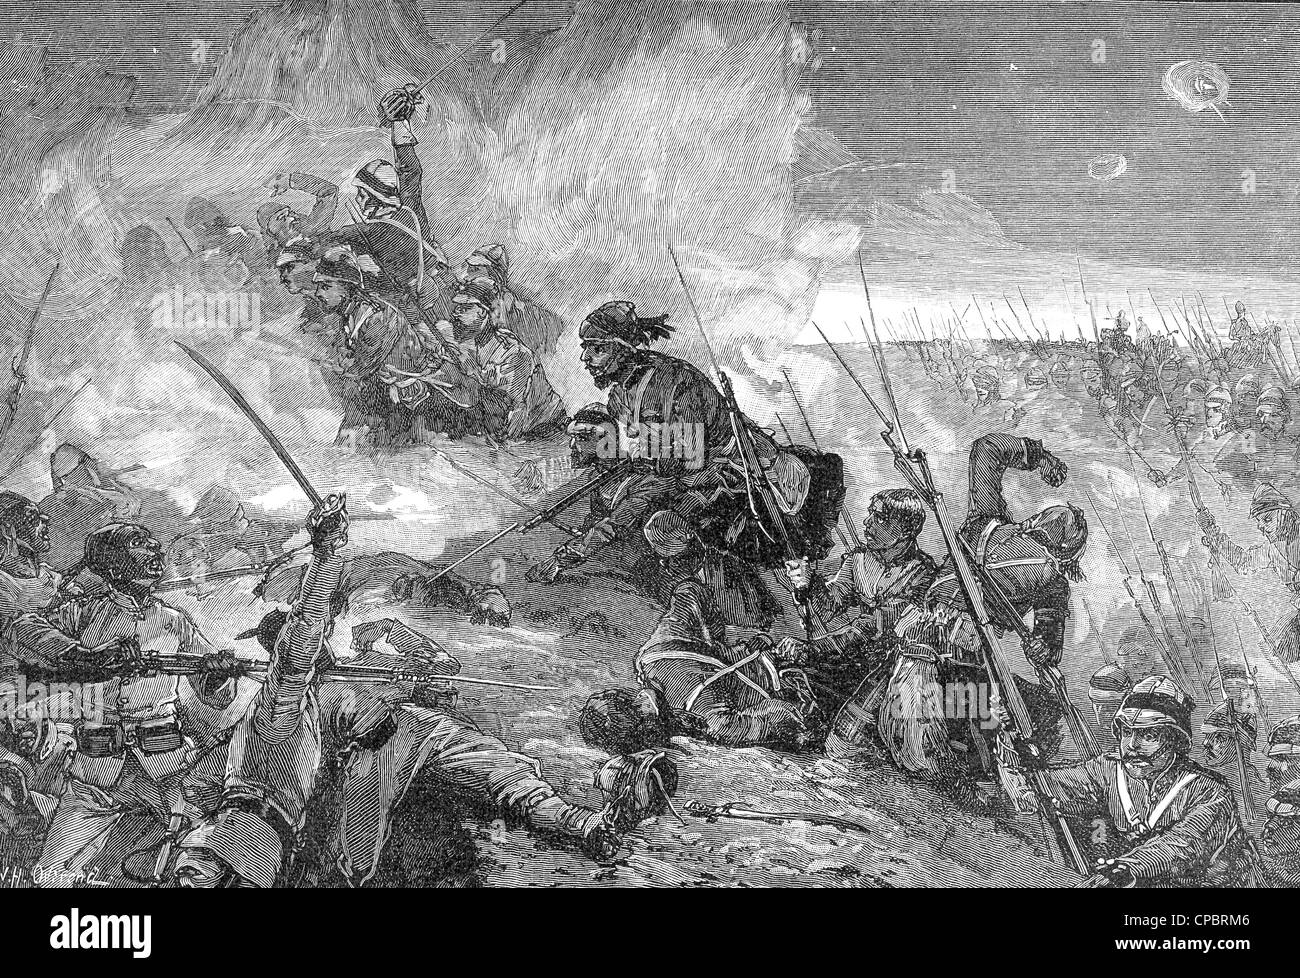 BATTLE OF TEL-EL-KEBIR 13 September 1882. The Highland Brigade reinforcements fighting the Egyptian Army - Stock Image